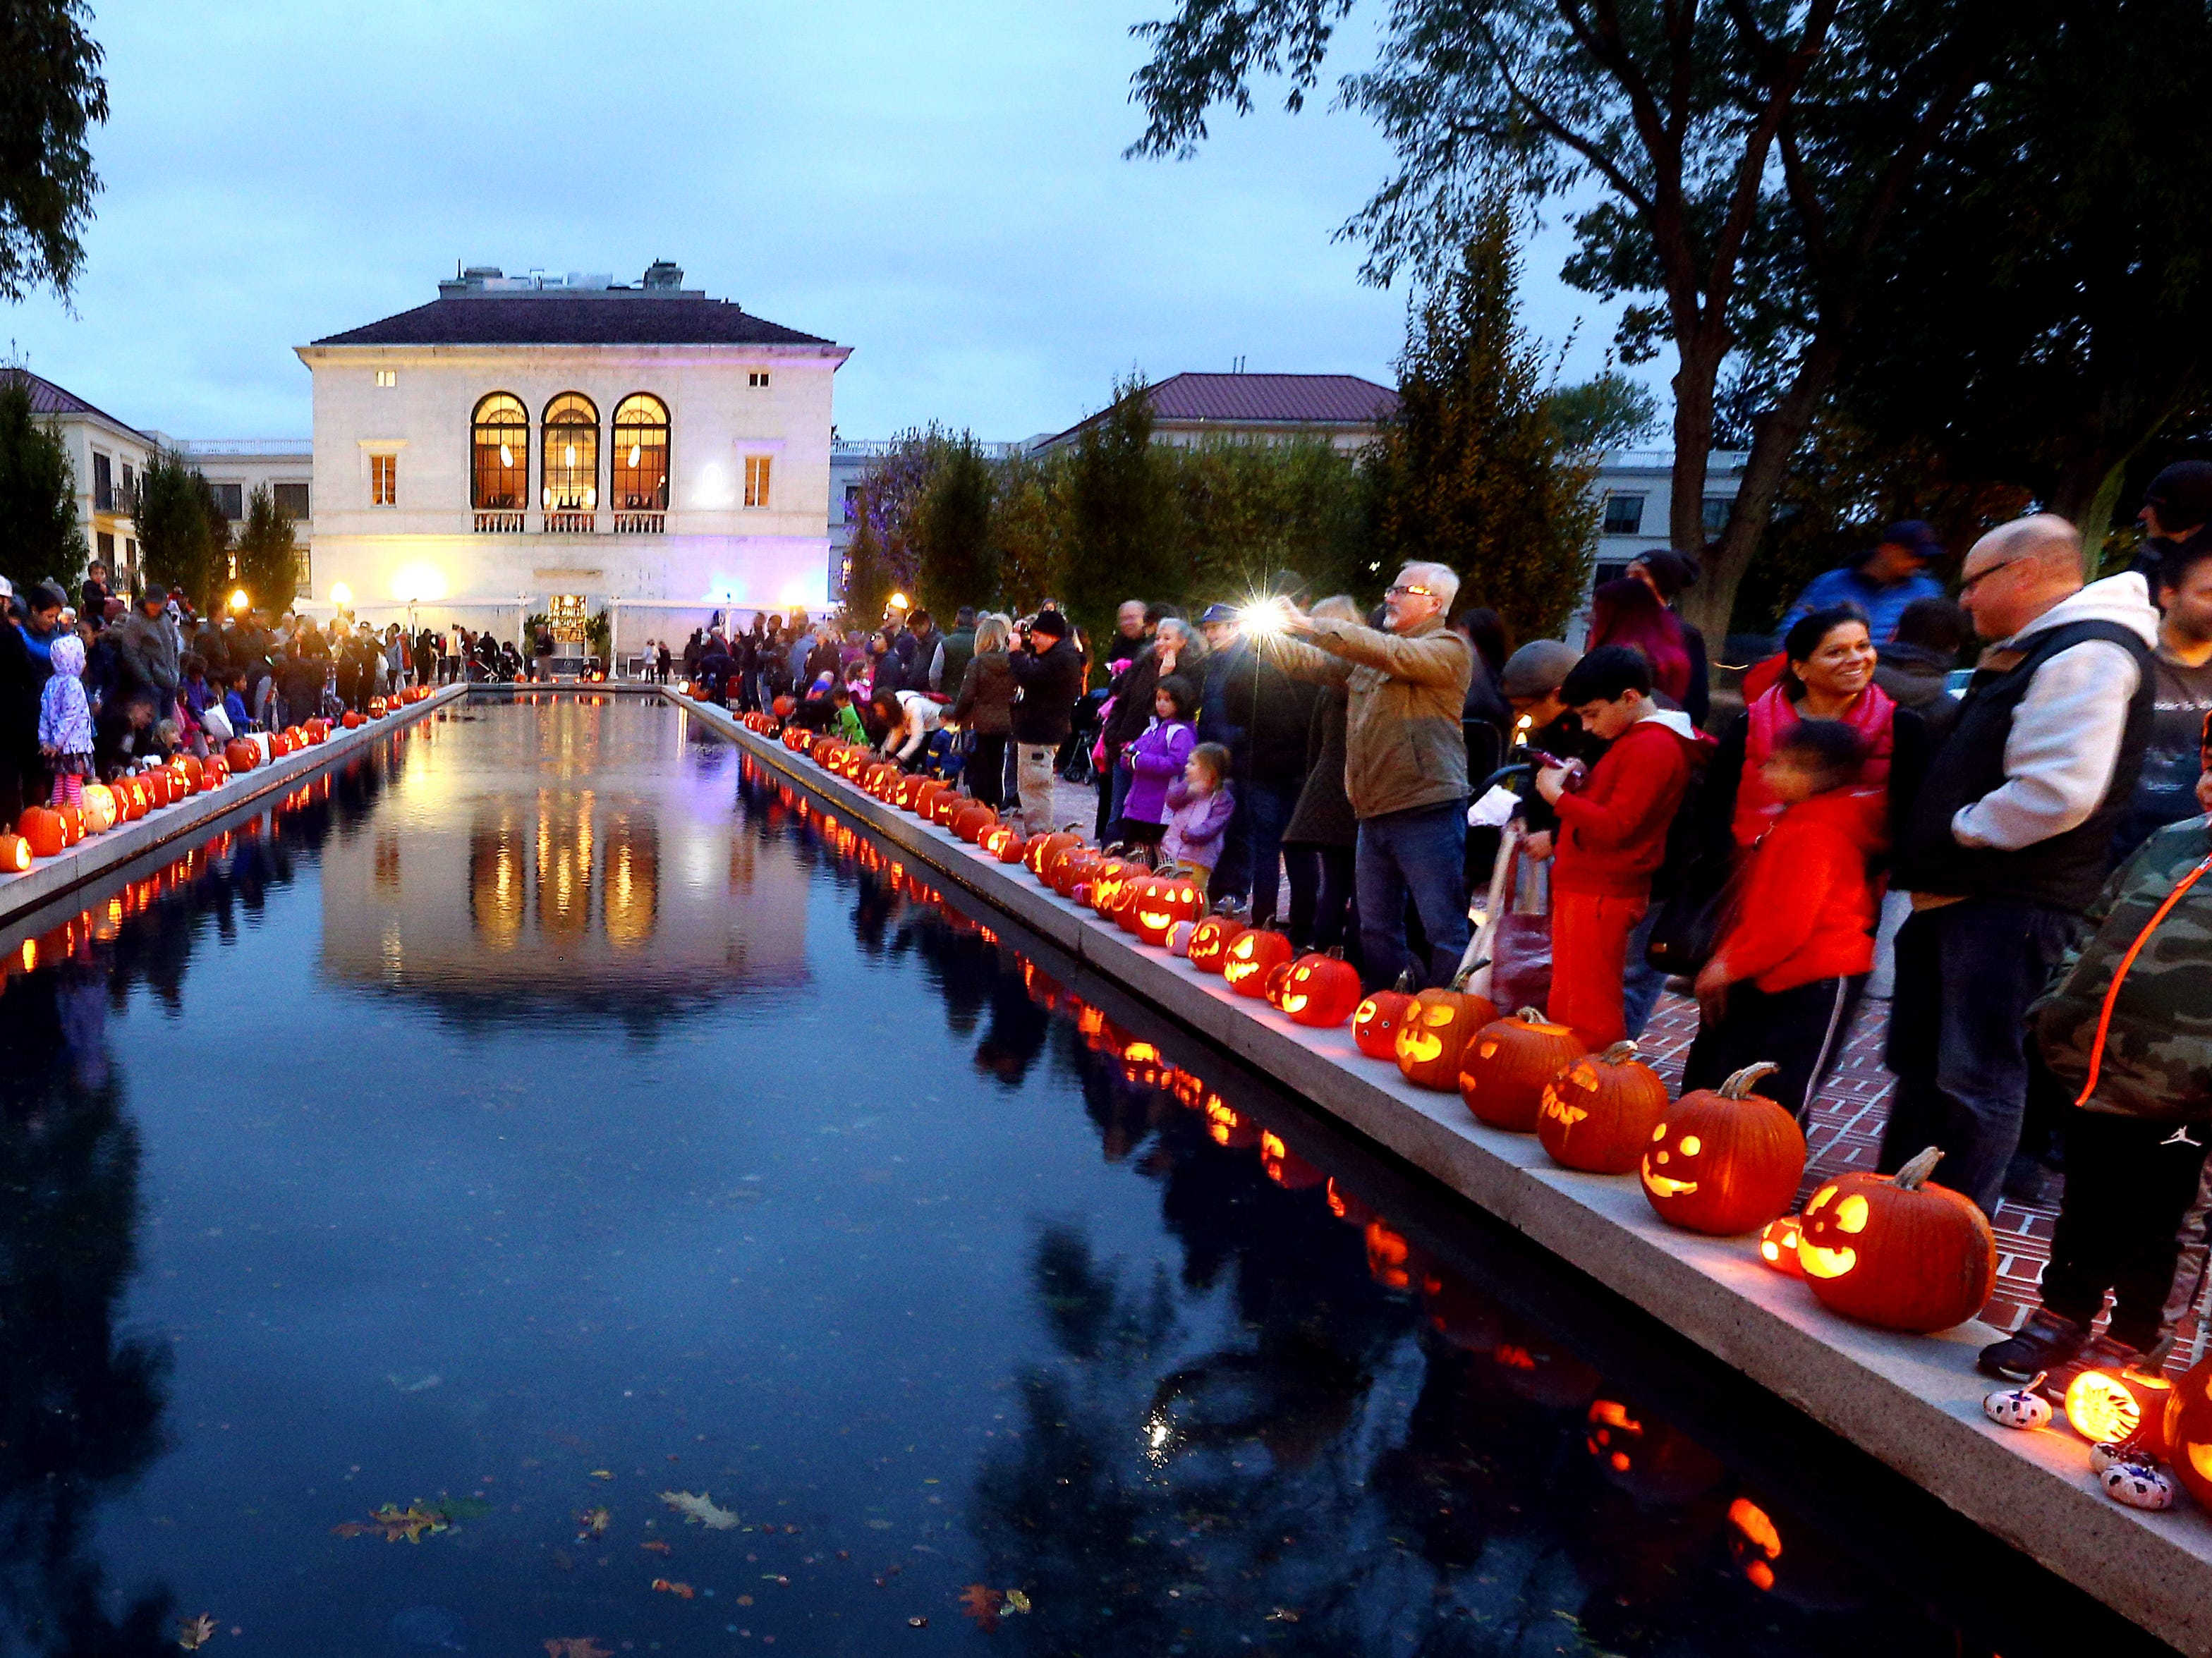 The 9th annual MorrisArts 9th annual Pumpkin Illumination at the Vail Mansion. October 28, 2018, Morristown, NJ